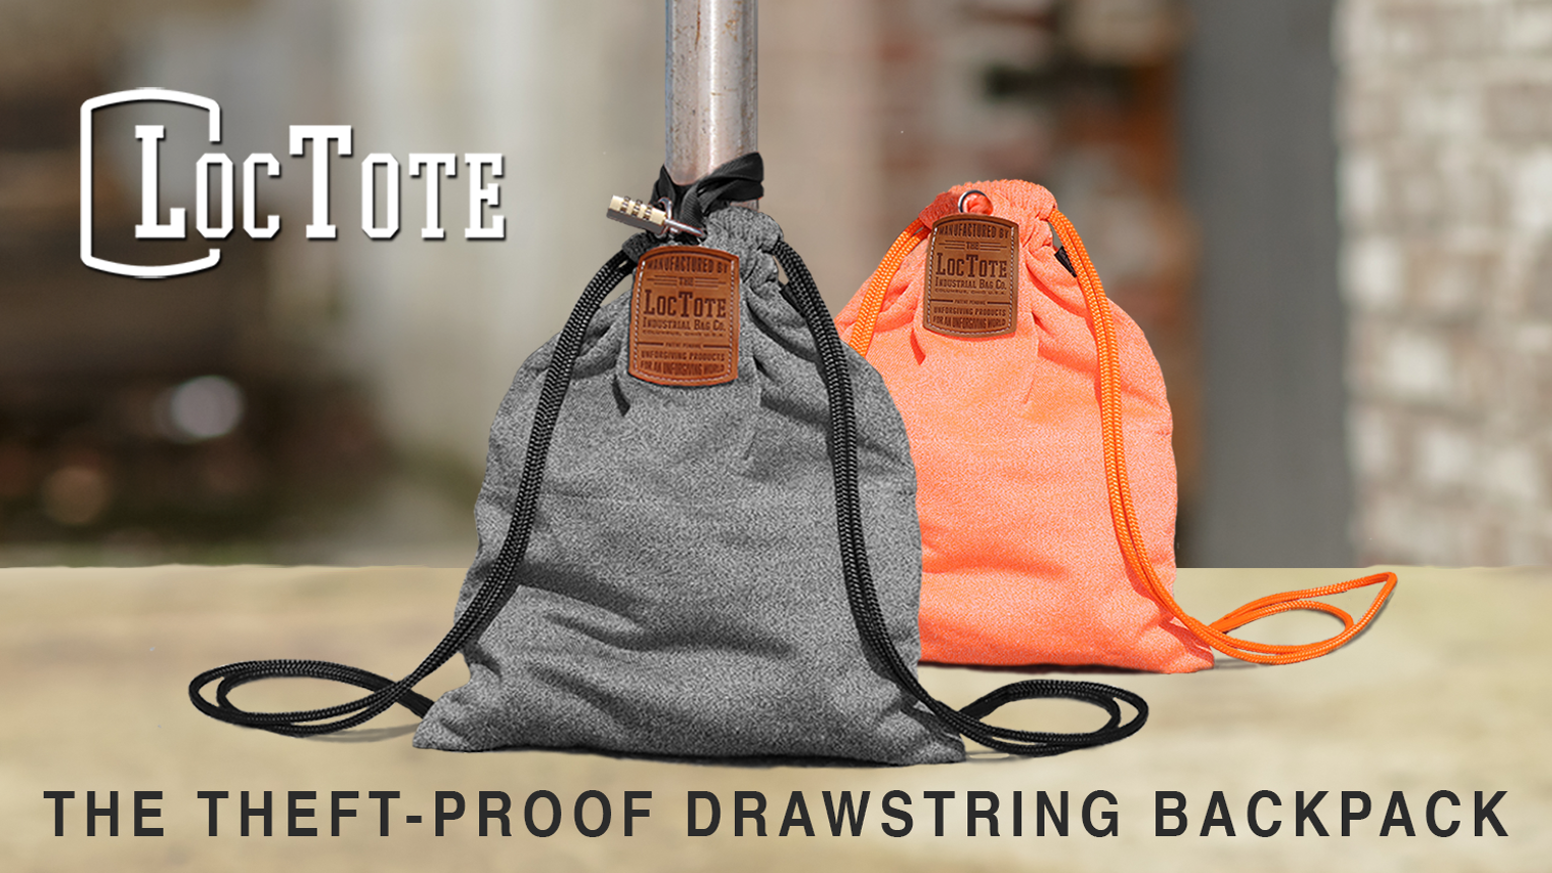 5bce1fc4d92b The Theft-Proof Drawstring Backpack by LOCTOTE INDUSTRIAL BAG CO ...